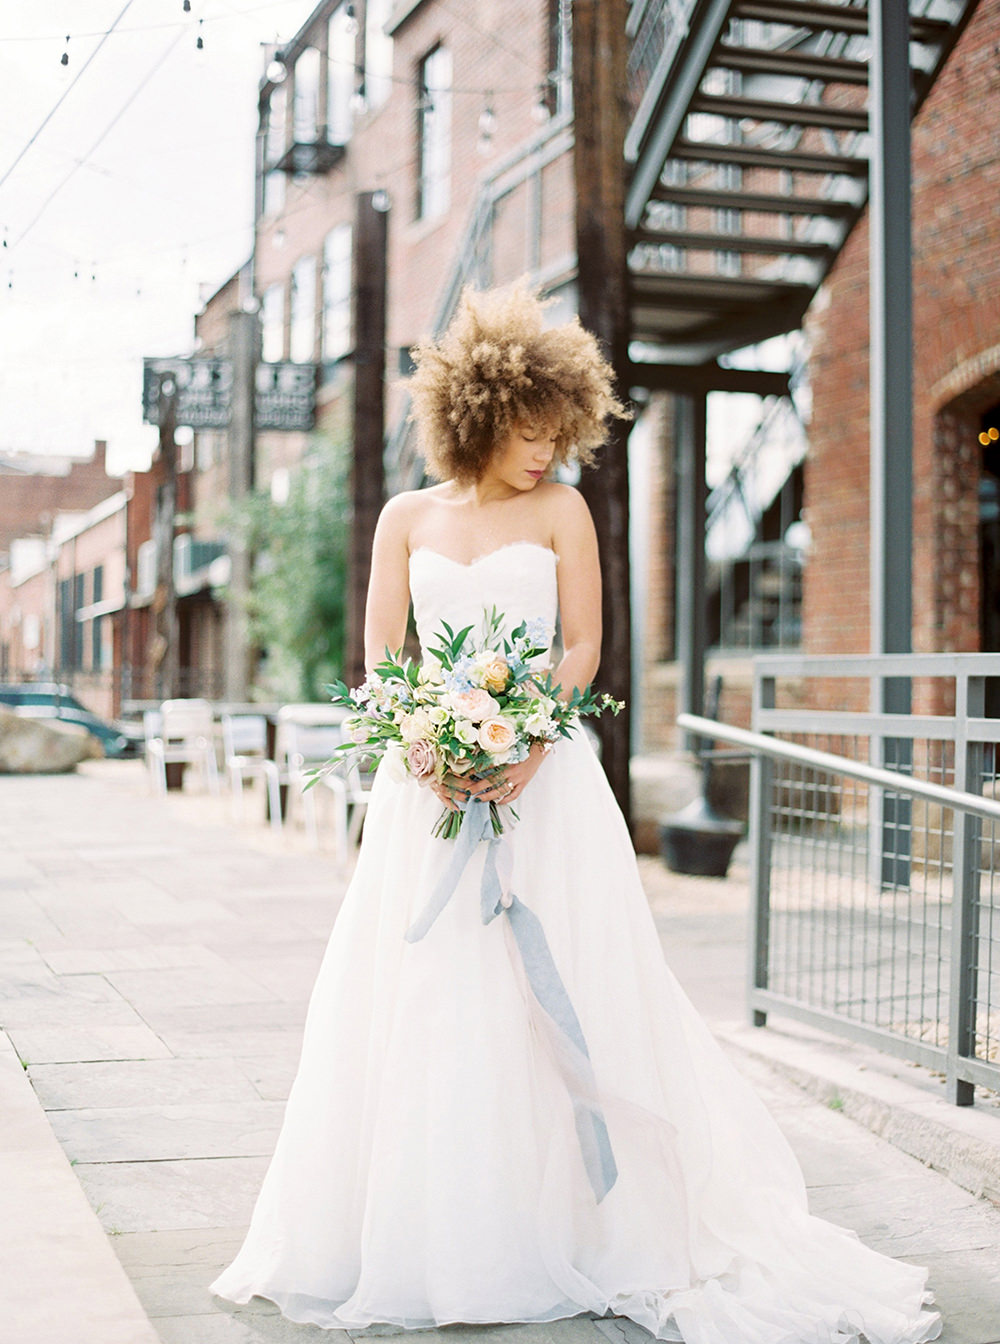 wedding photography - photo by Photos by Heart https://ruffledblog.com/downtown-birmingham-spring-wedding-inspiration